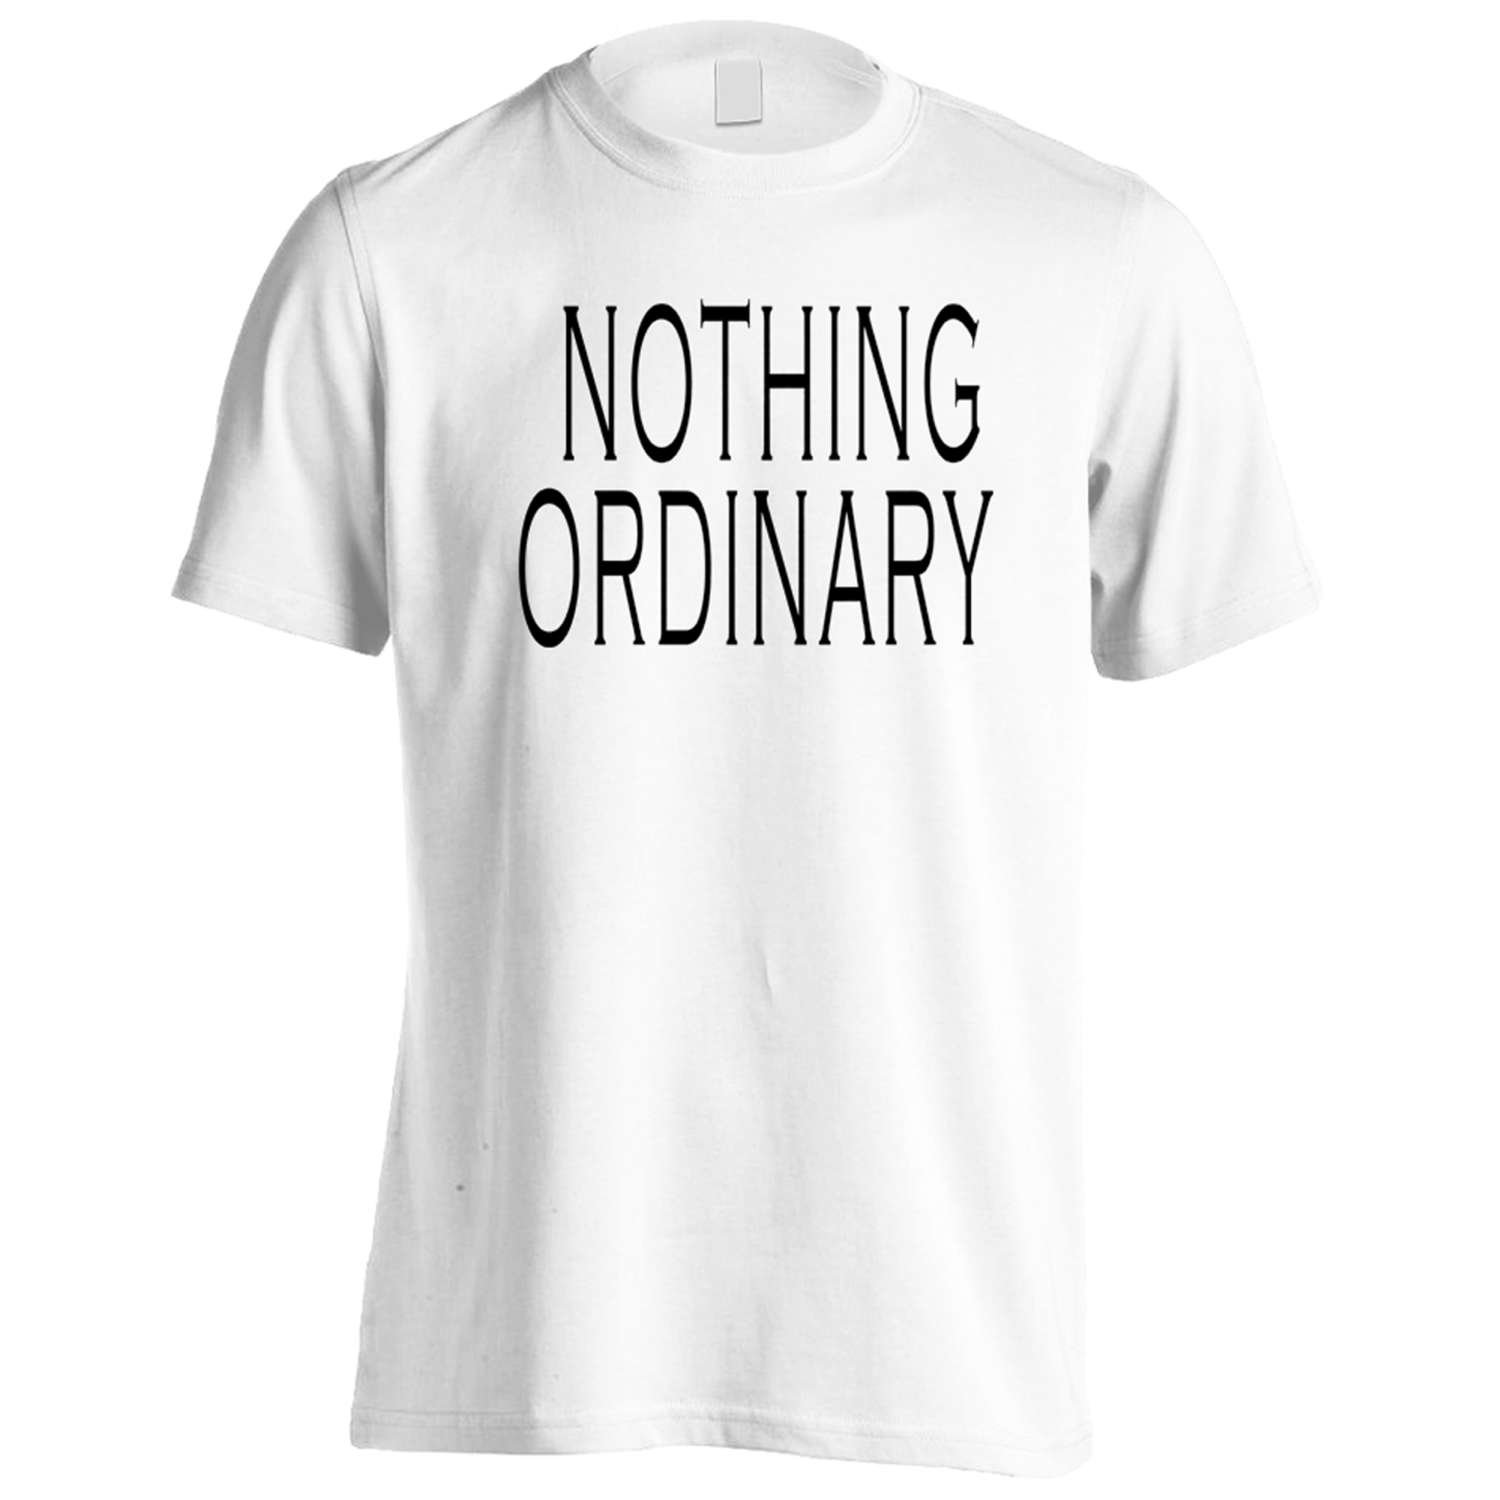 NOTHING ORDINARY Funny Novelty New Men's T-Shirt Tee f69m